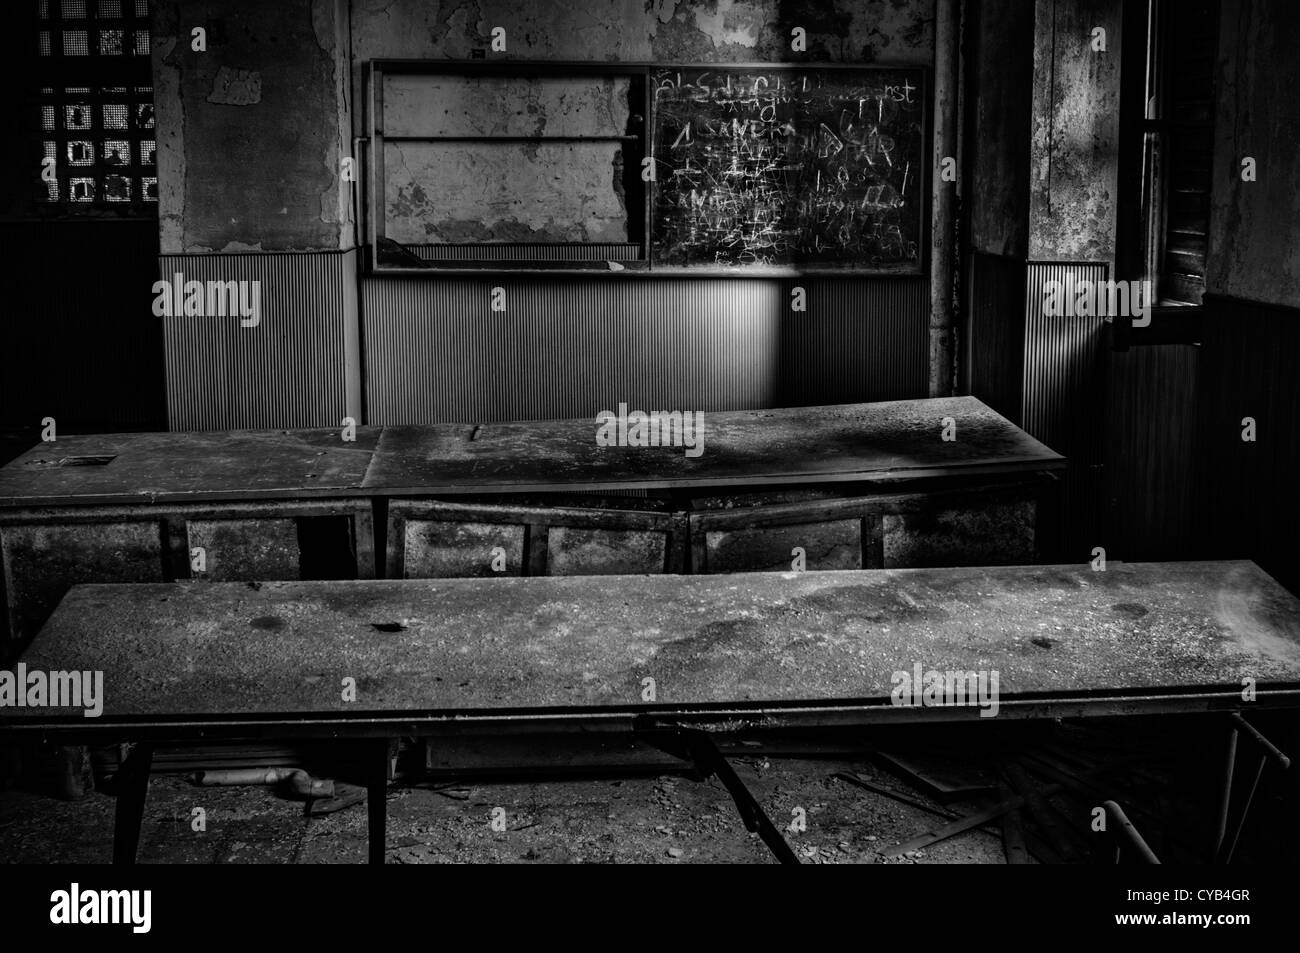 Italy. Ruined classroom in abandoned school - Stock Image